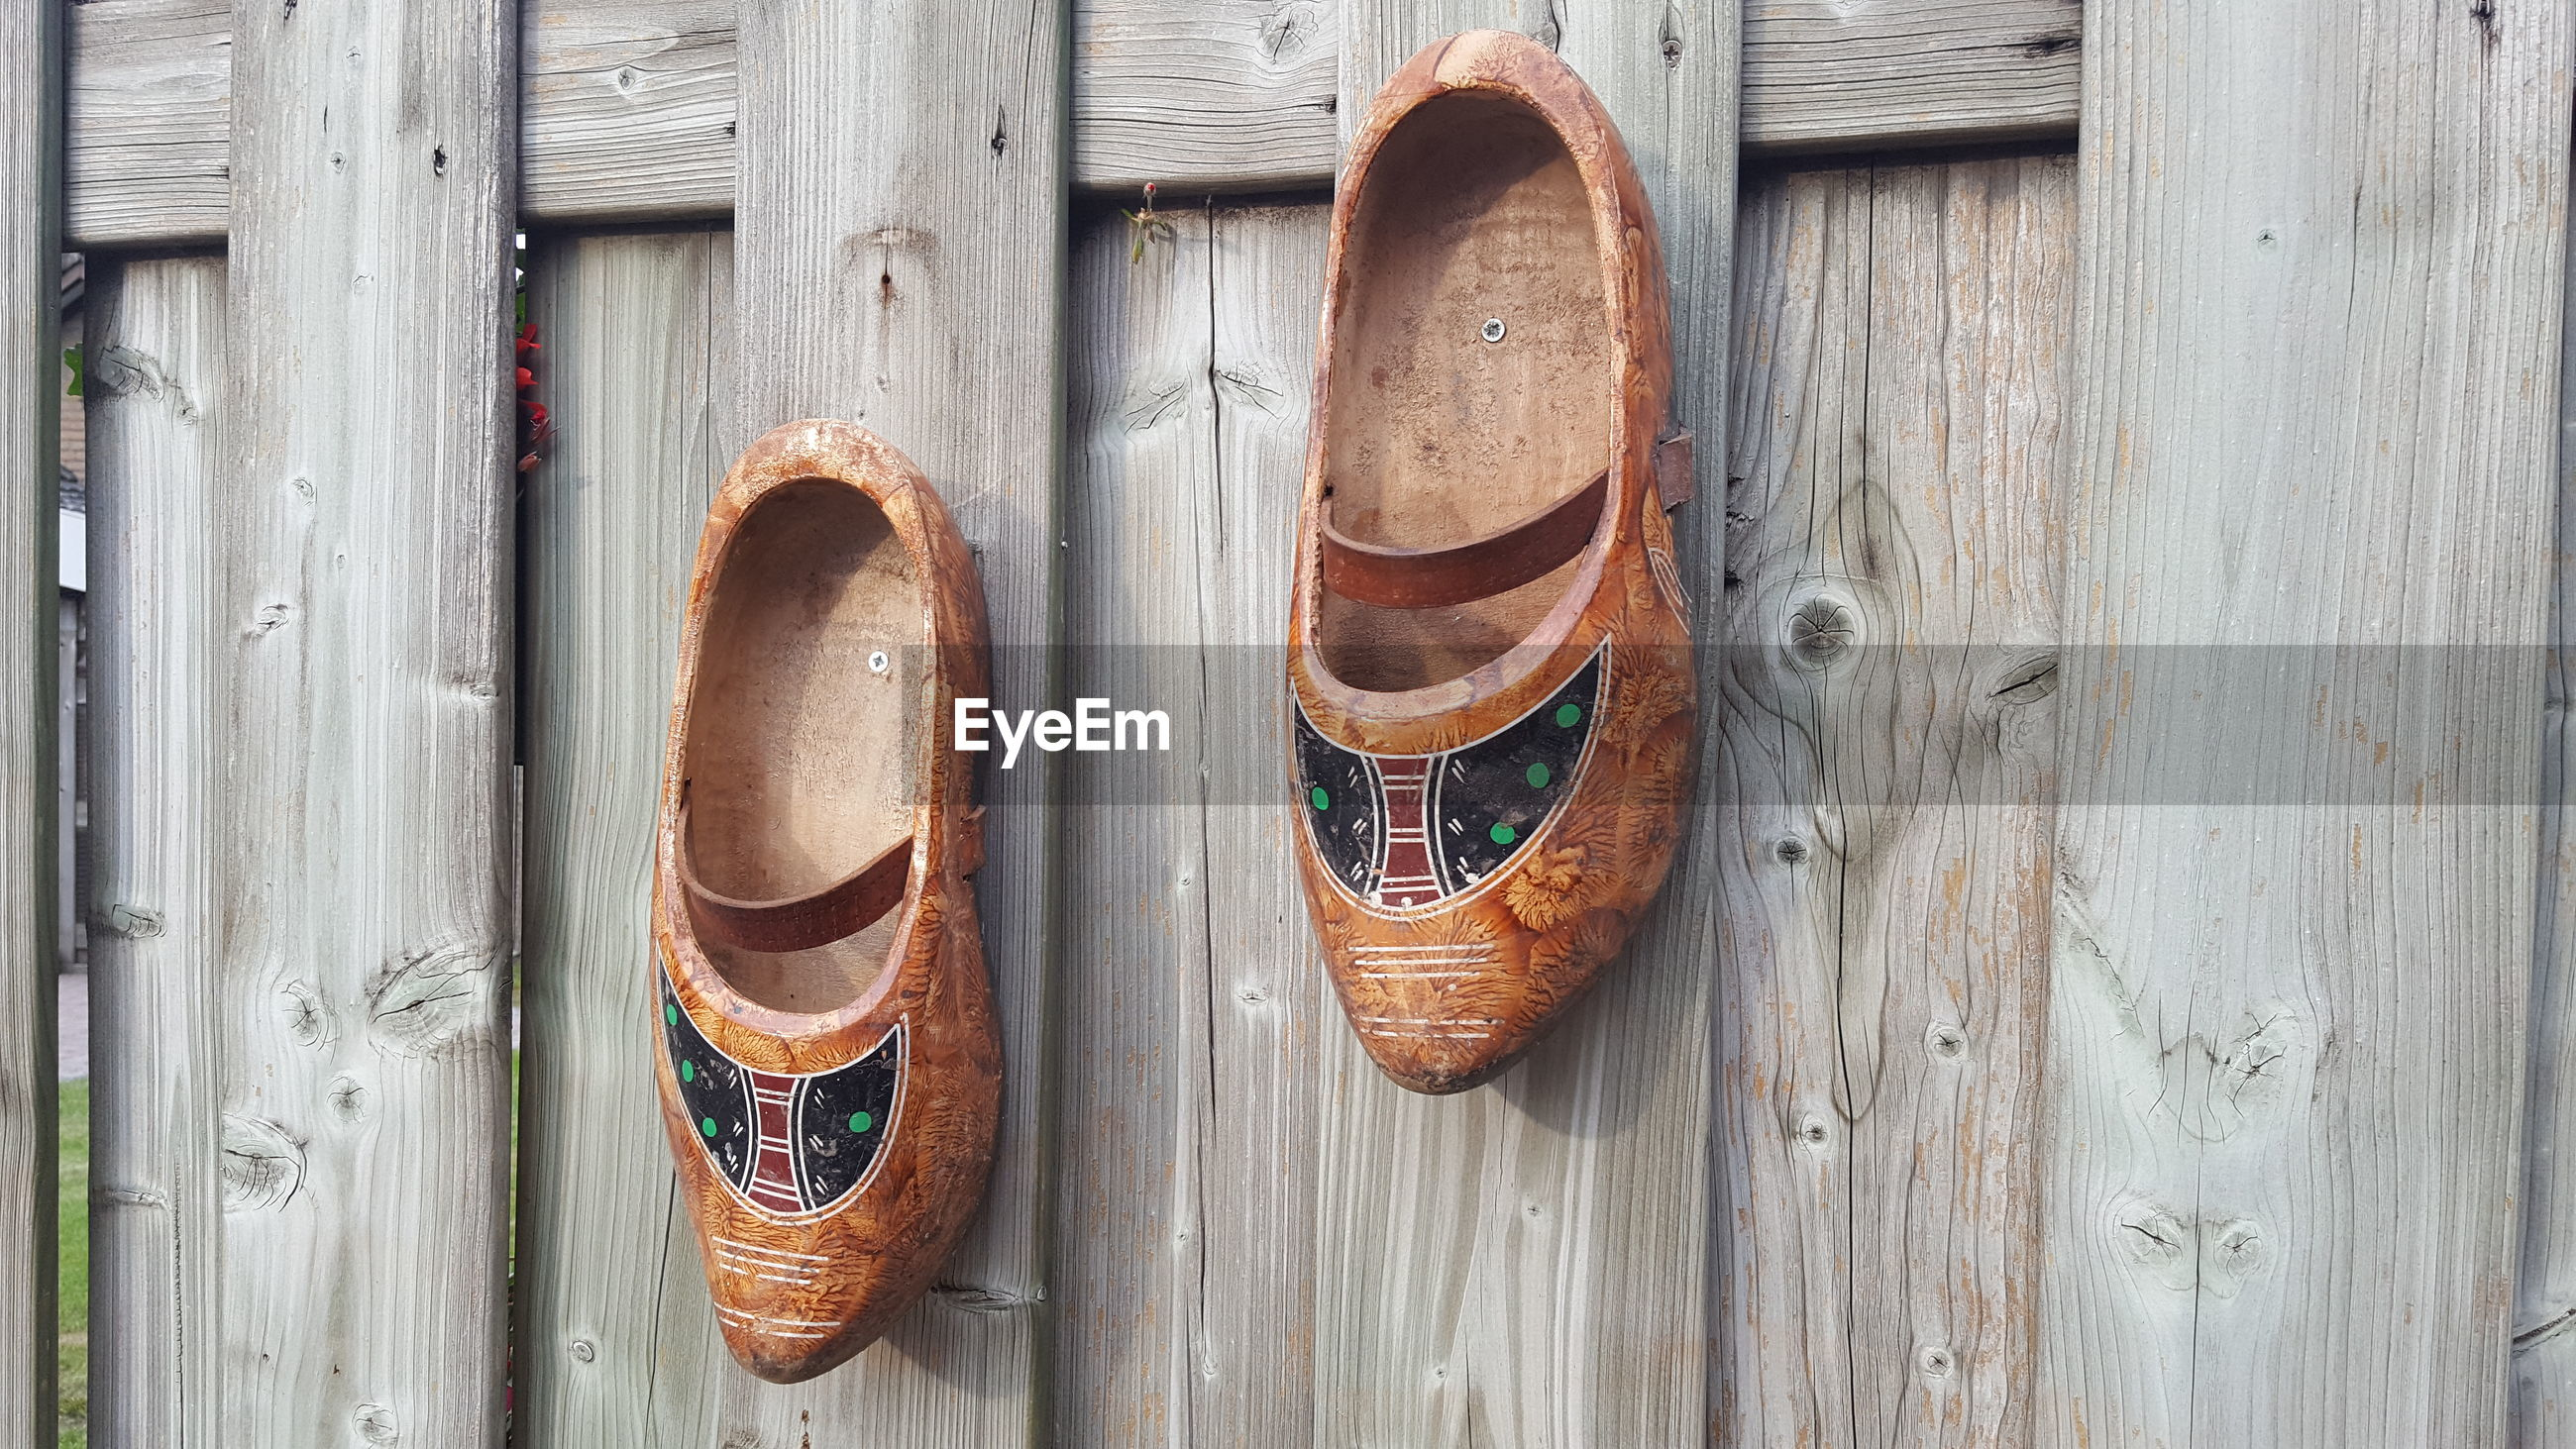 CLOSE-UP OF SHOES ON WOODEN DOOR